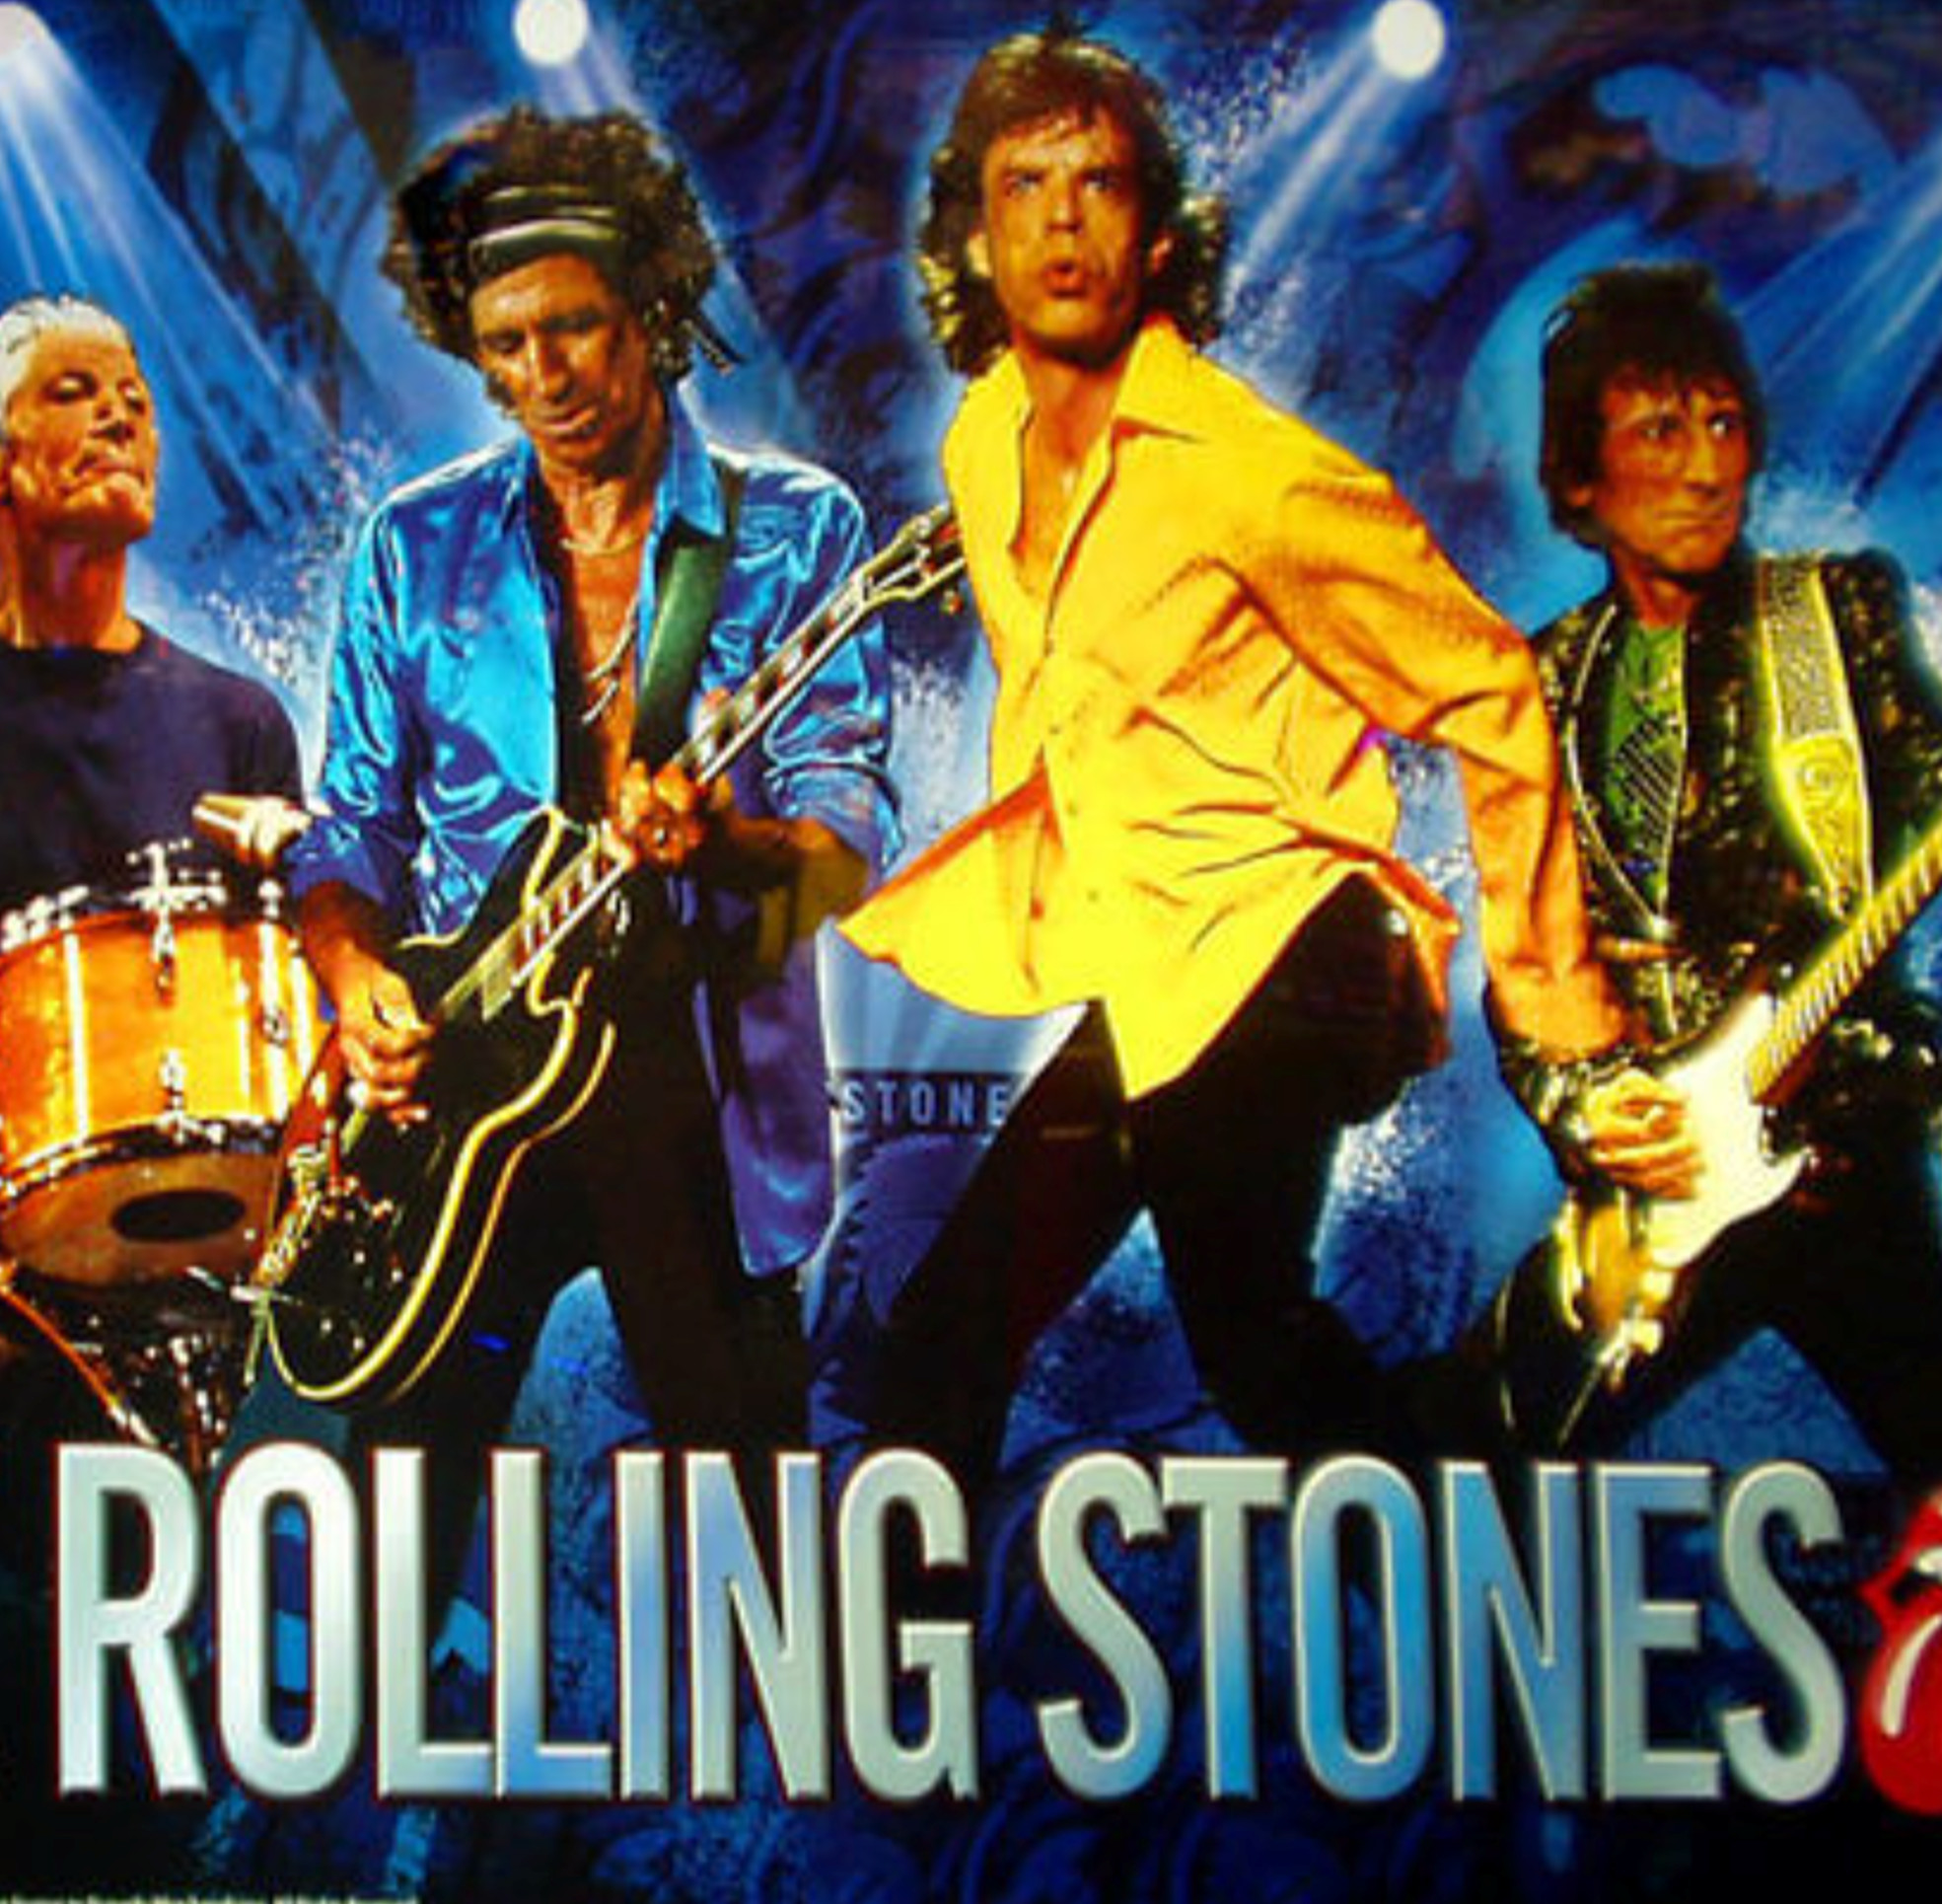 The Roling Stones